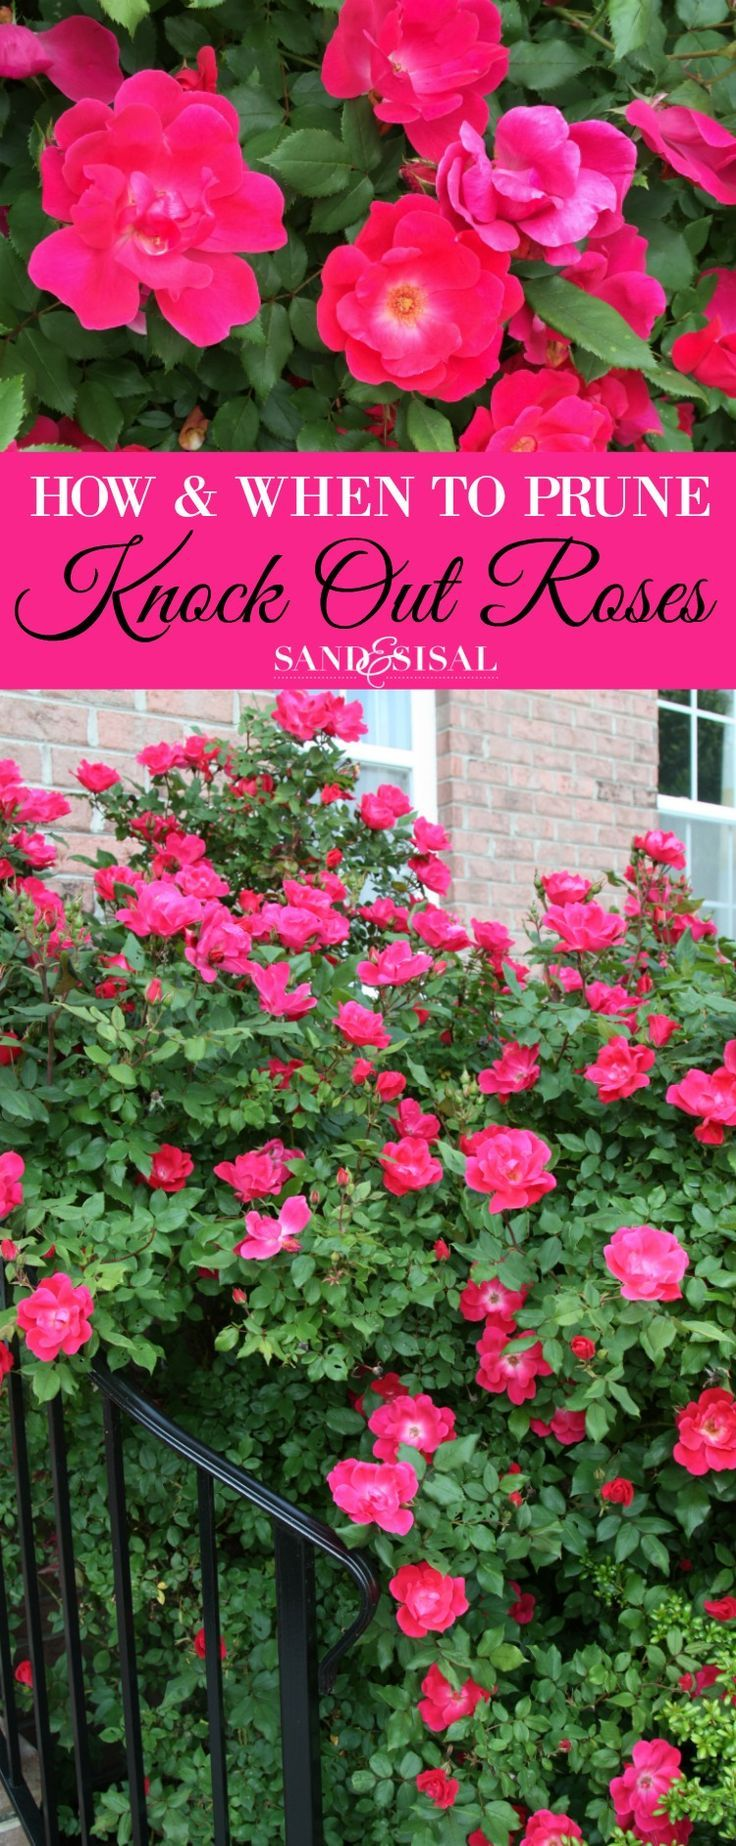 How And When To Prune Knock Out Roses Knockout Roses Pruning Knockout Roses Pruning Roses